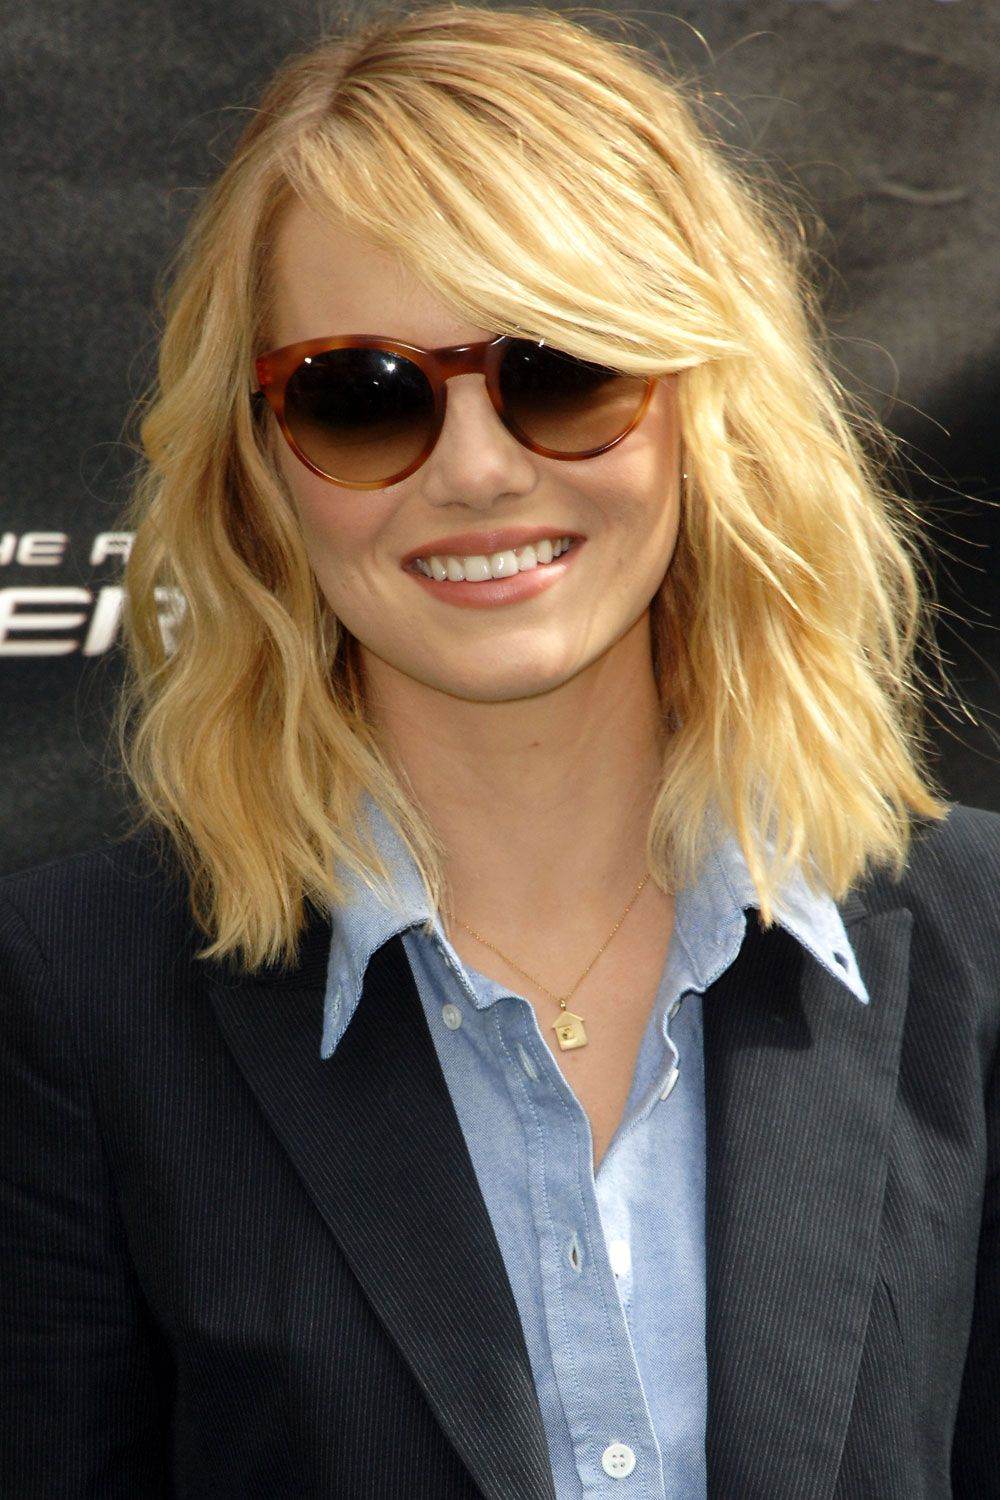 Beauty Tips Celebrity Style and Fashion Advice from  Hair u Beauty